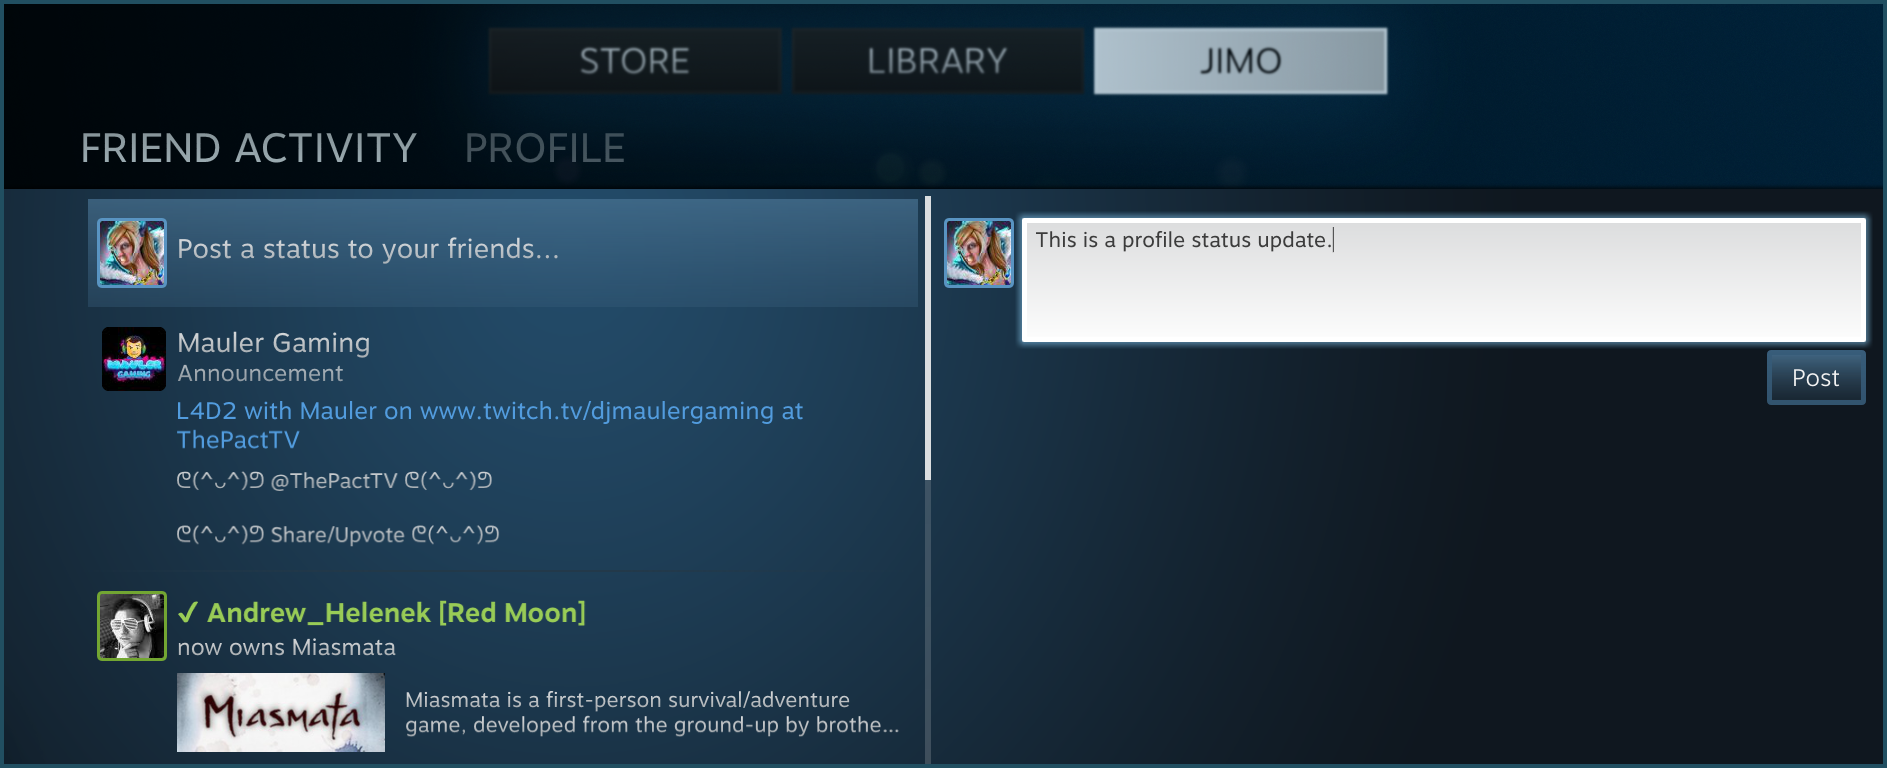 how to find steam profile from id